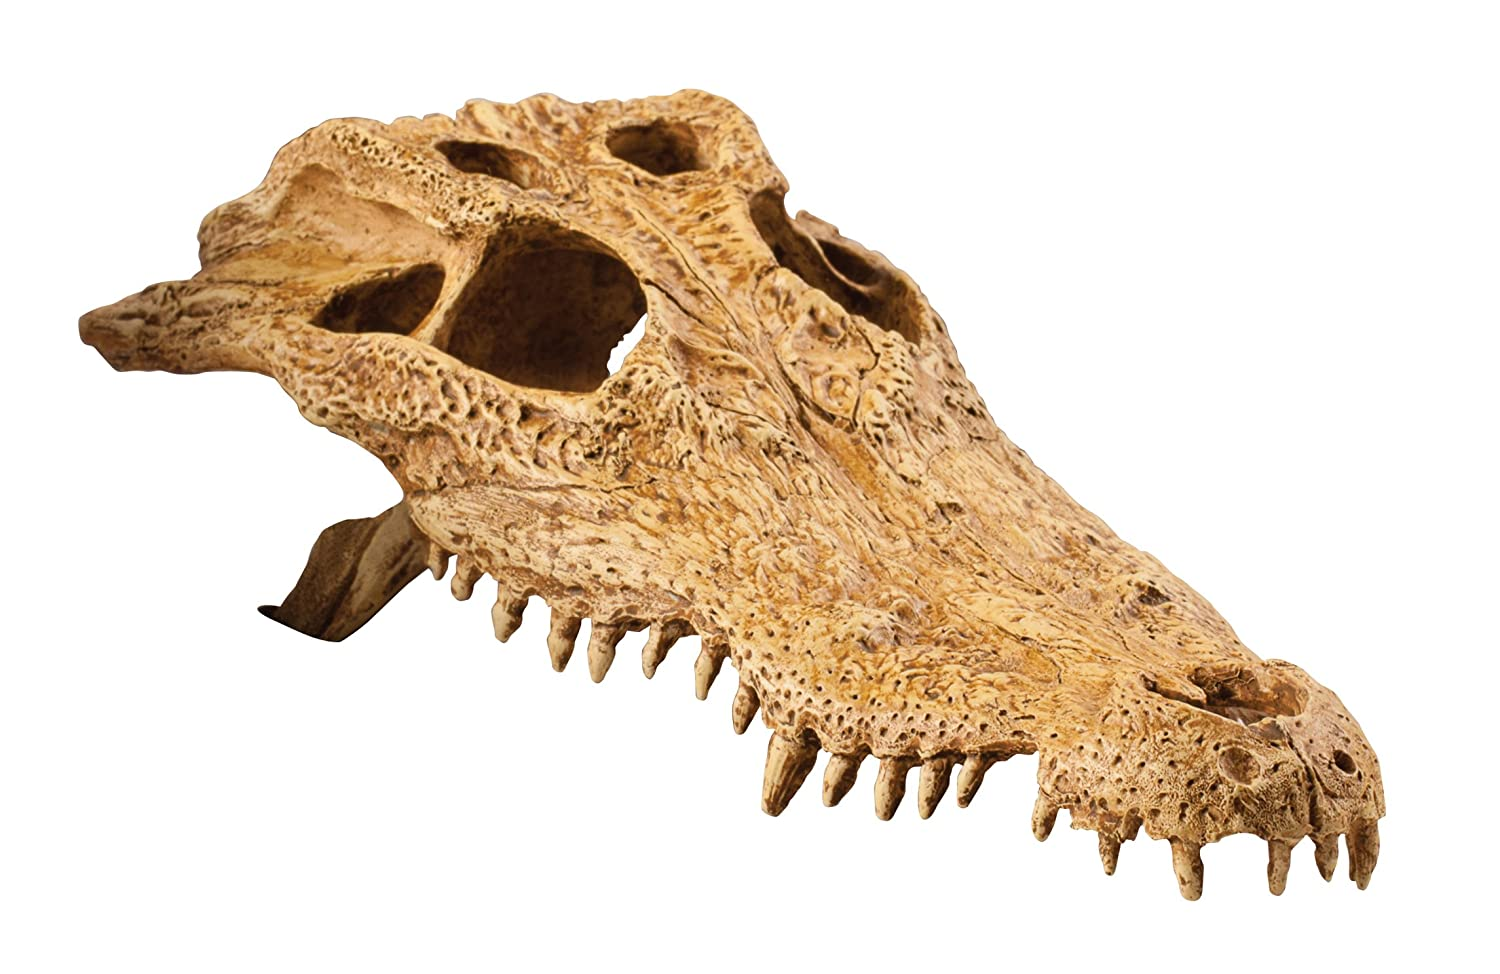 Exo Terra Crocodile Skull Terrarium D Pet Terrariums Snake Skeleton Diagram The At Very Supplies